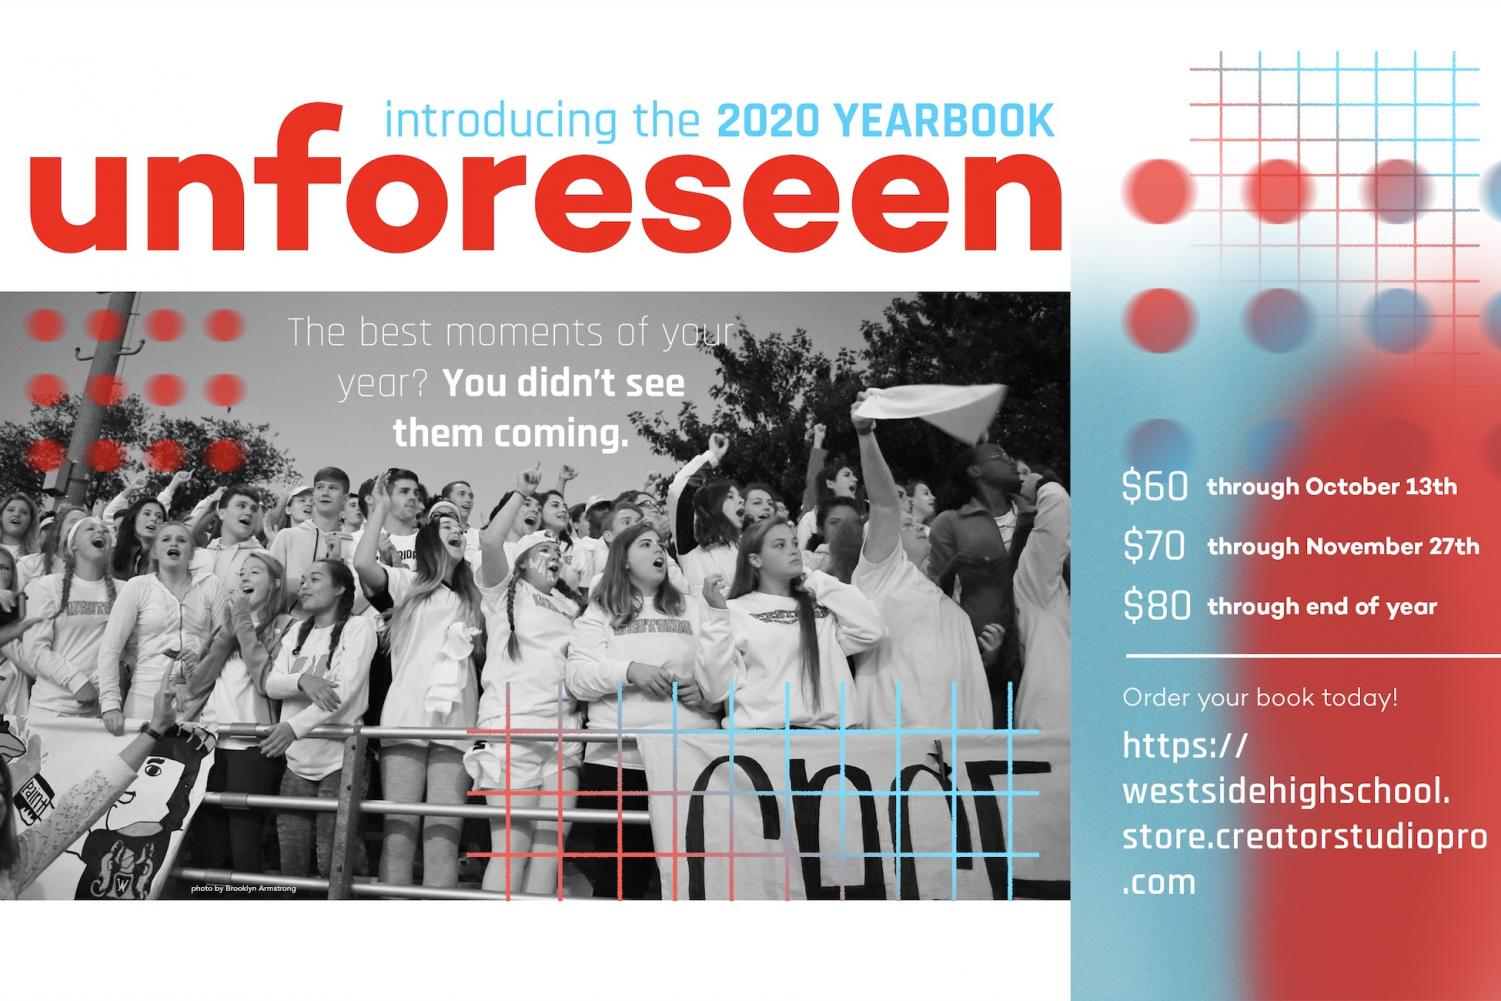 The 2019-2020 yearbook will focus around the theme of 20-20 vision and the unforeseen futures of Westside students.